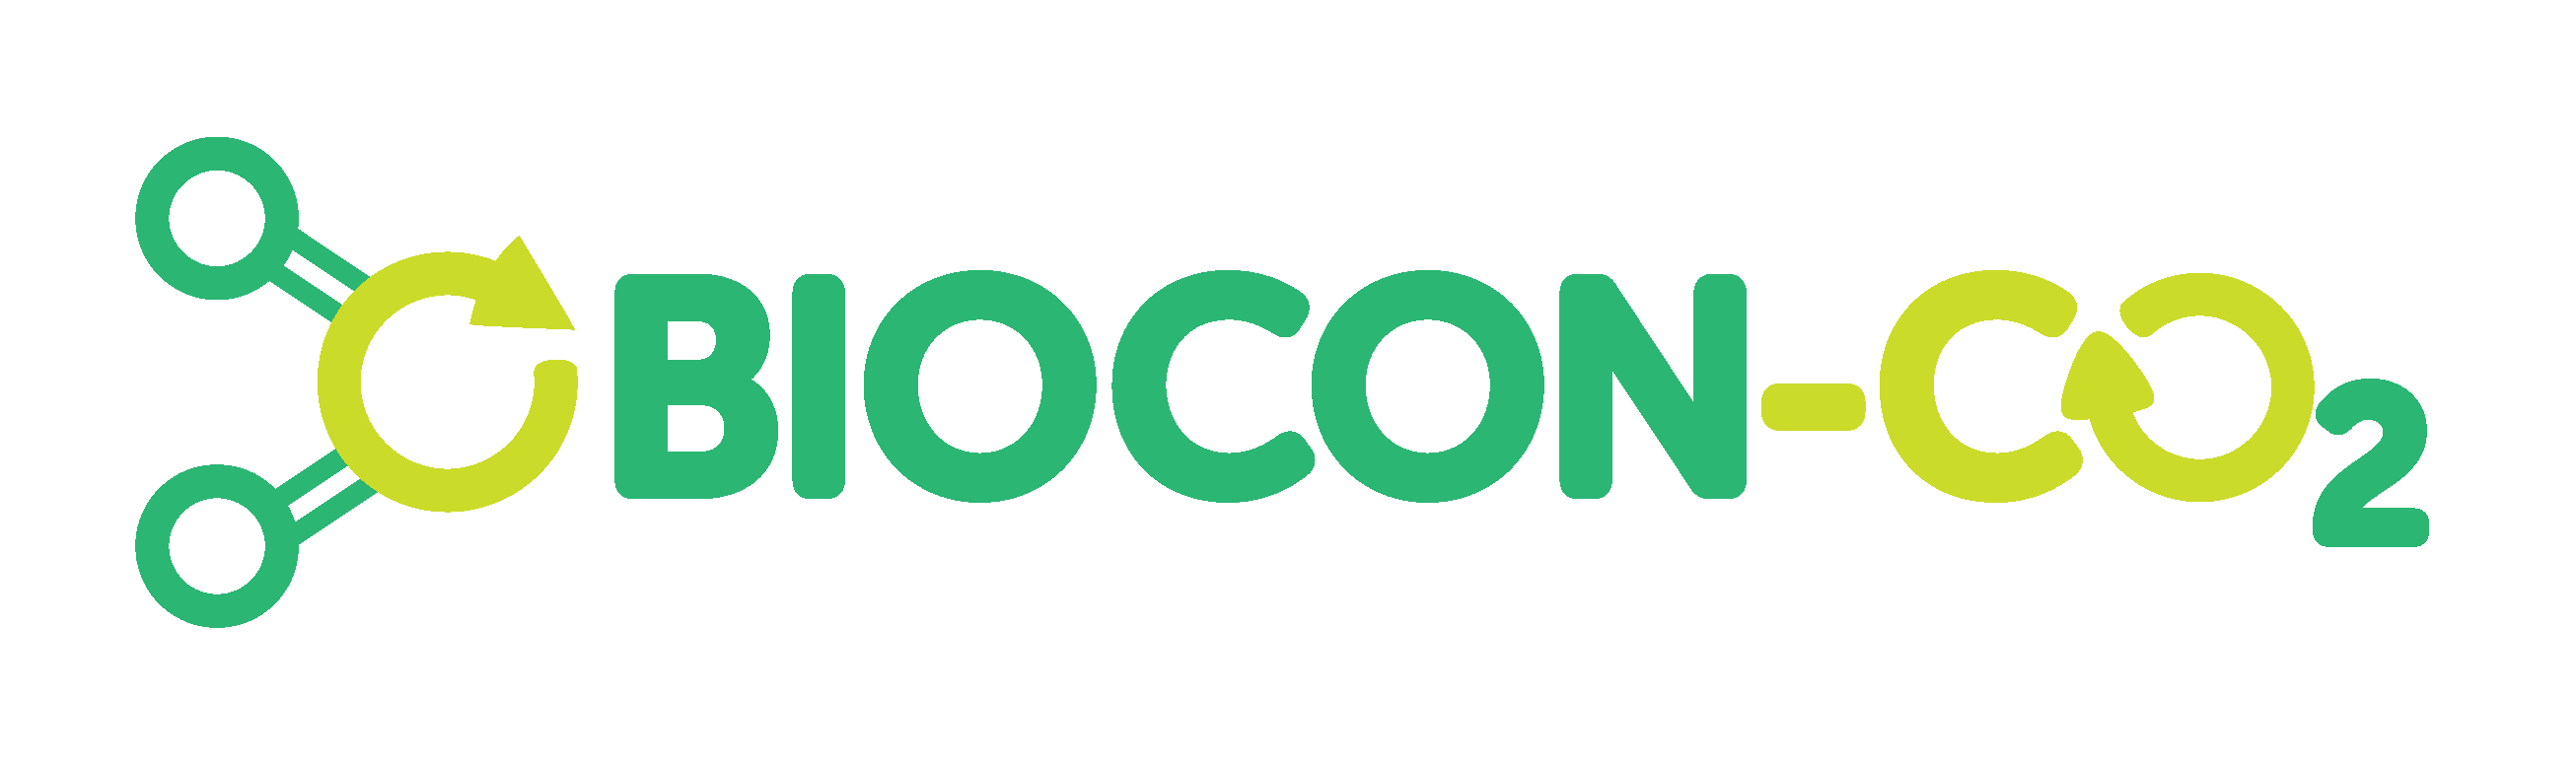 BIOCON-CO2 Community